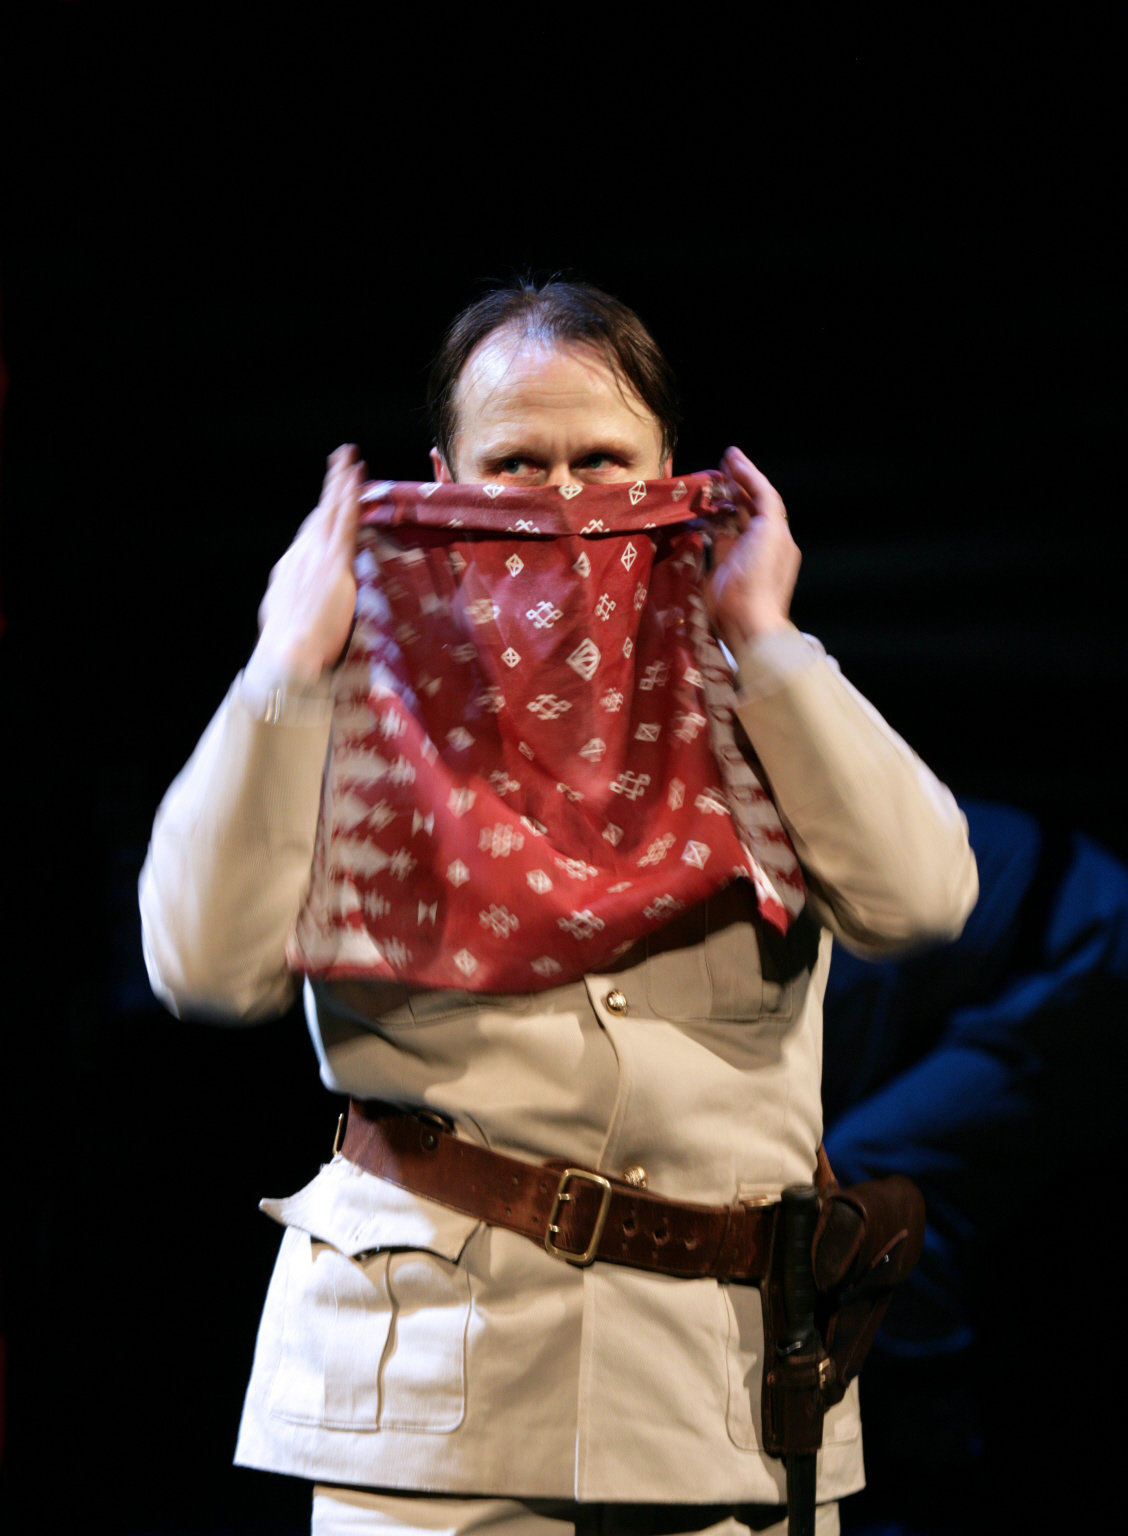 A man holds a handkerchief to his face.